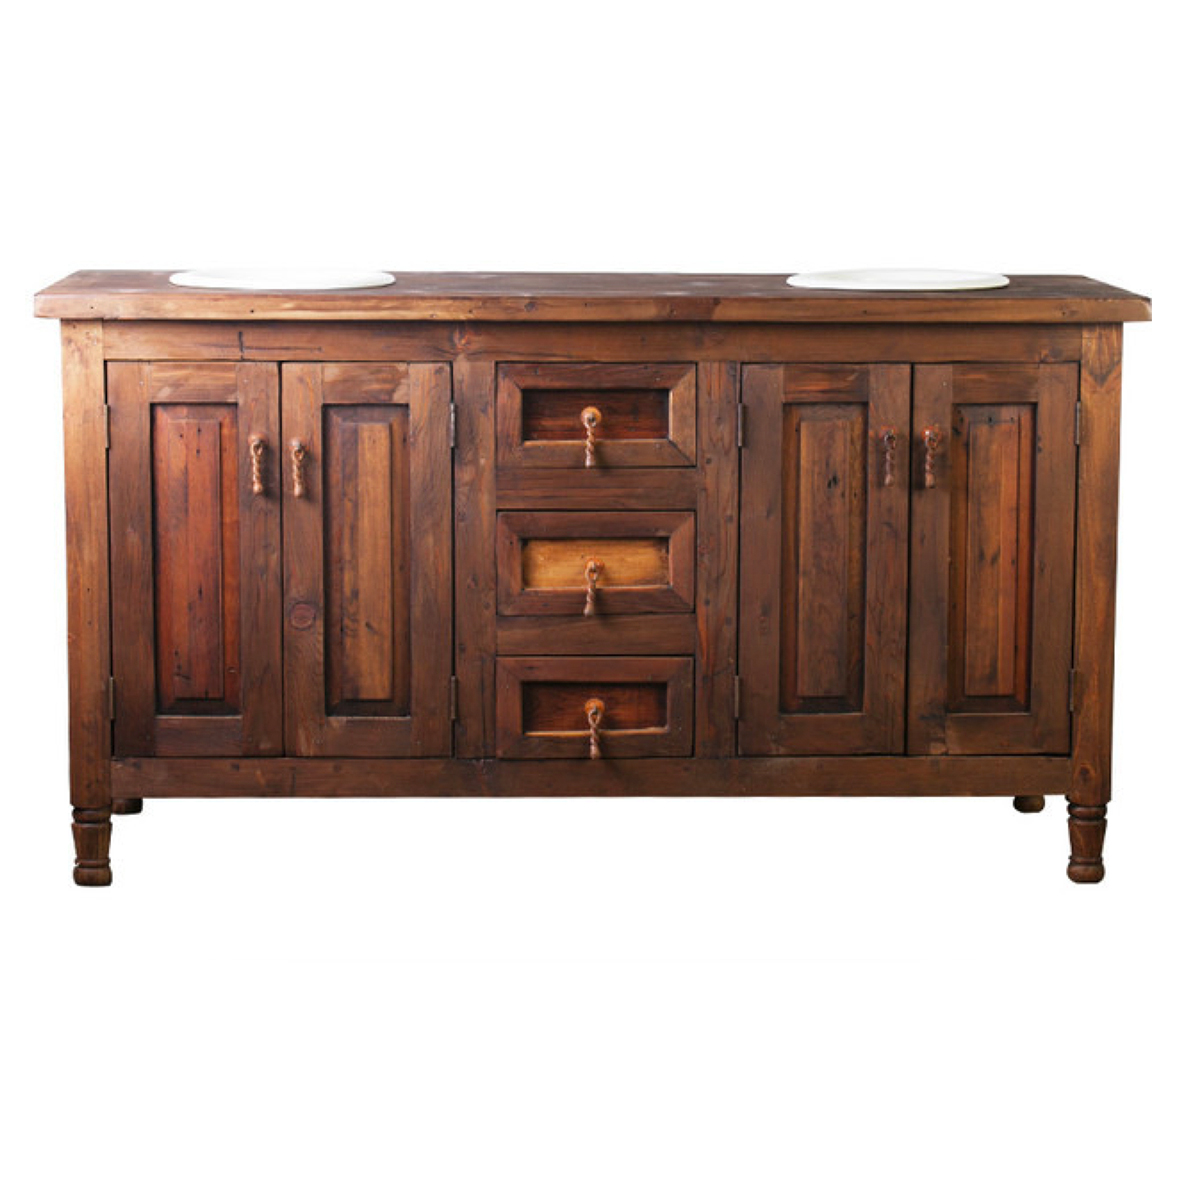 Request a Custom Quote - Double Sink Barnwood Vanity Made From Reclaimed Wood For Sale